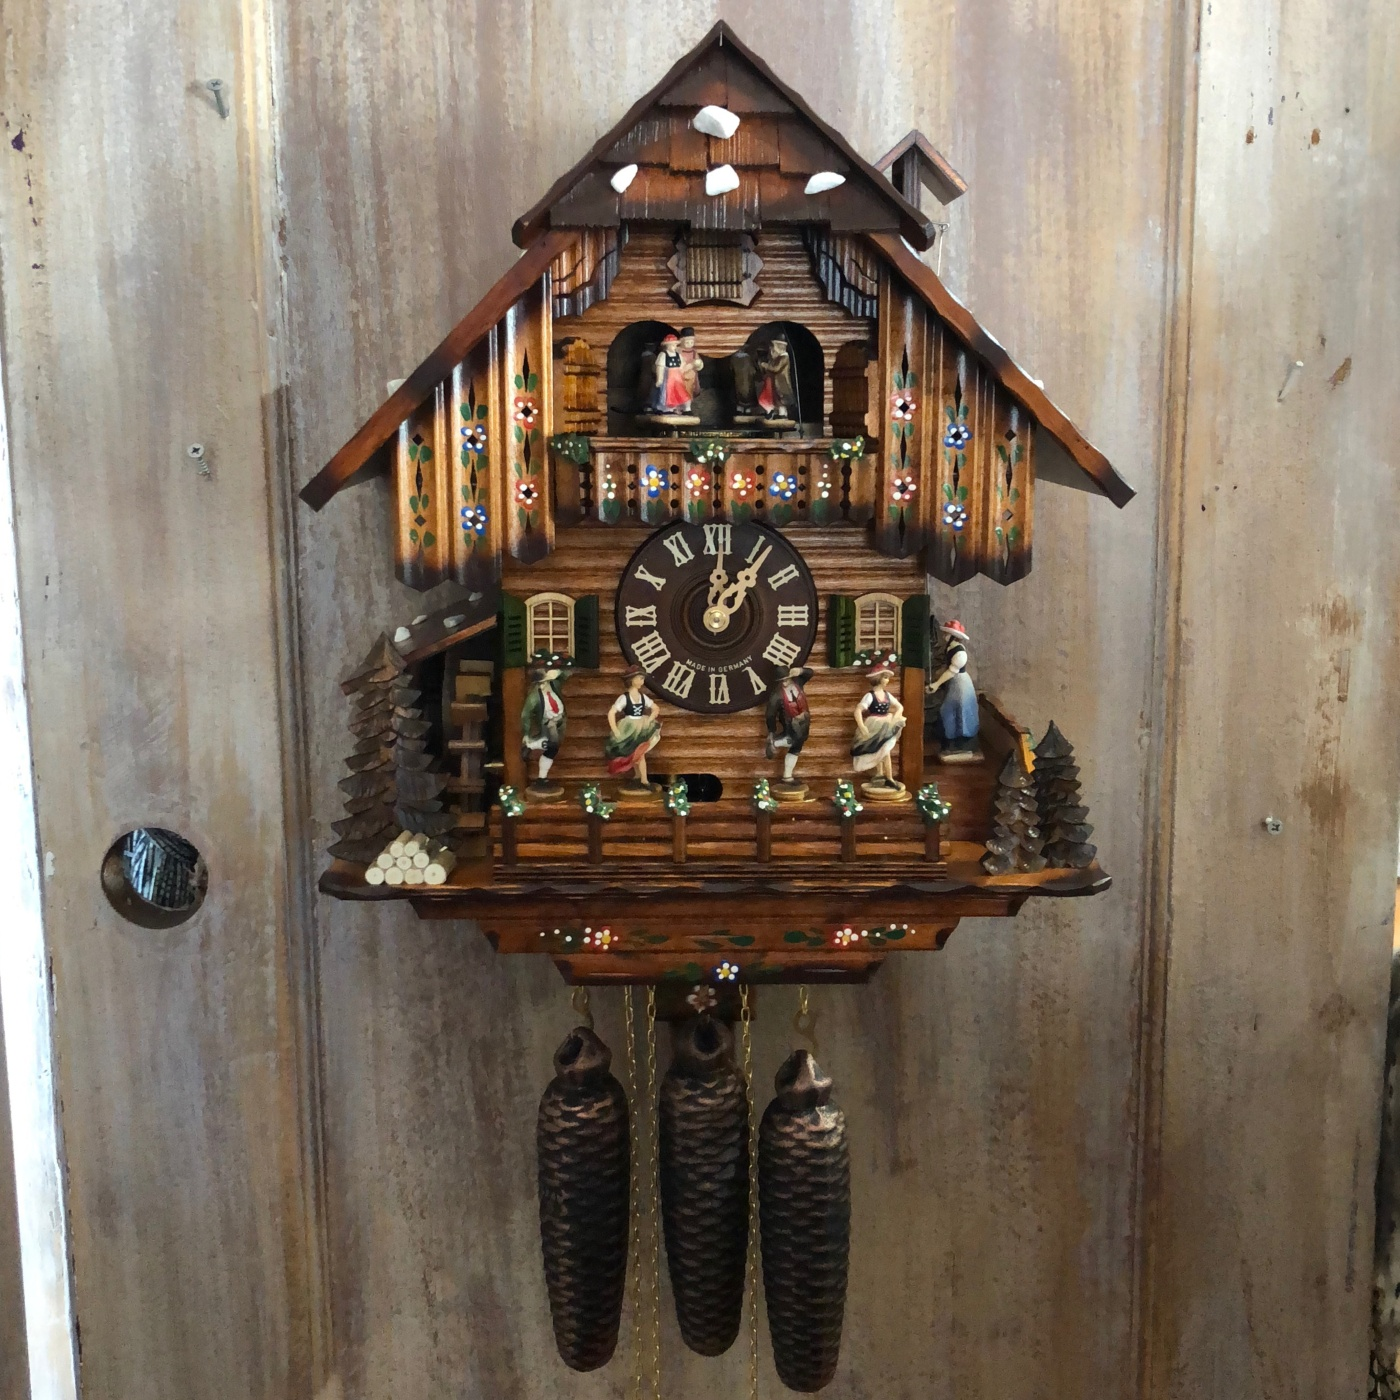 cuckoo clock with dancers